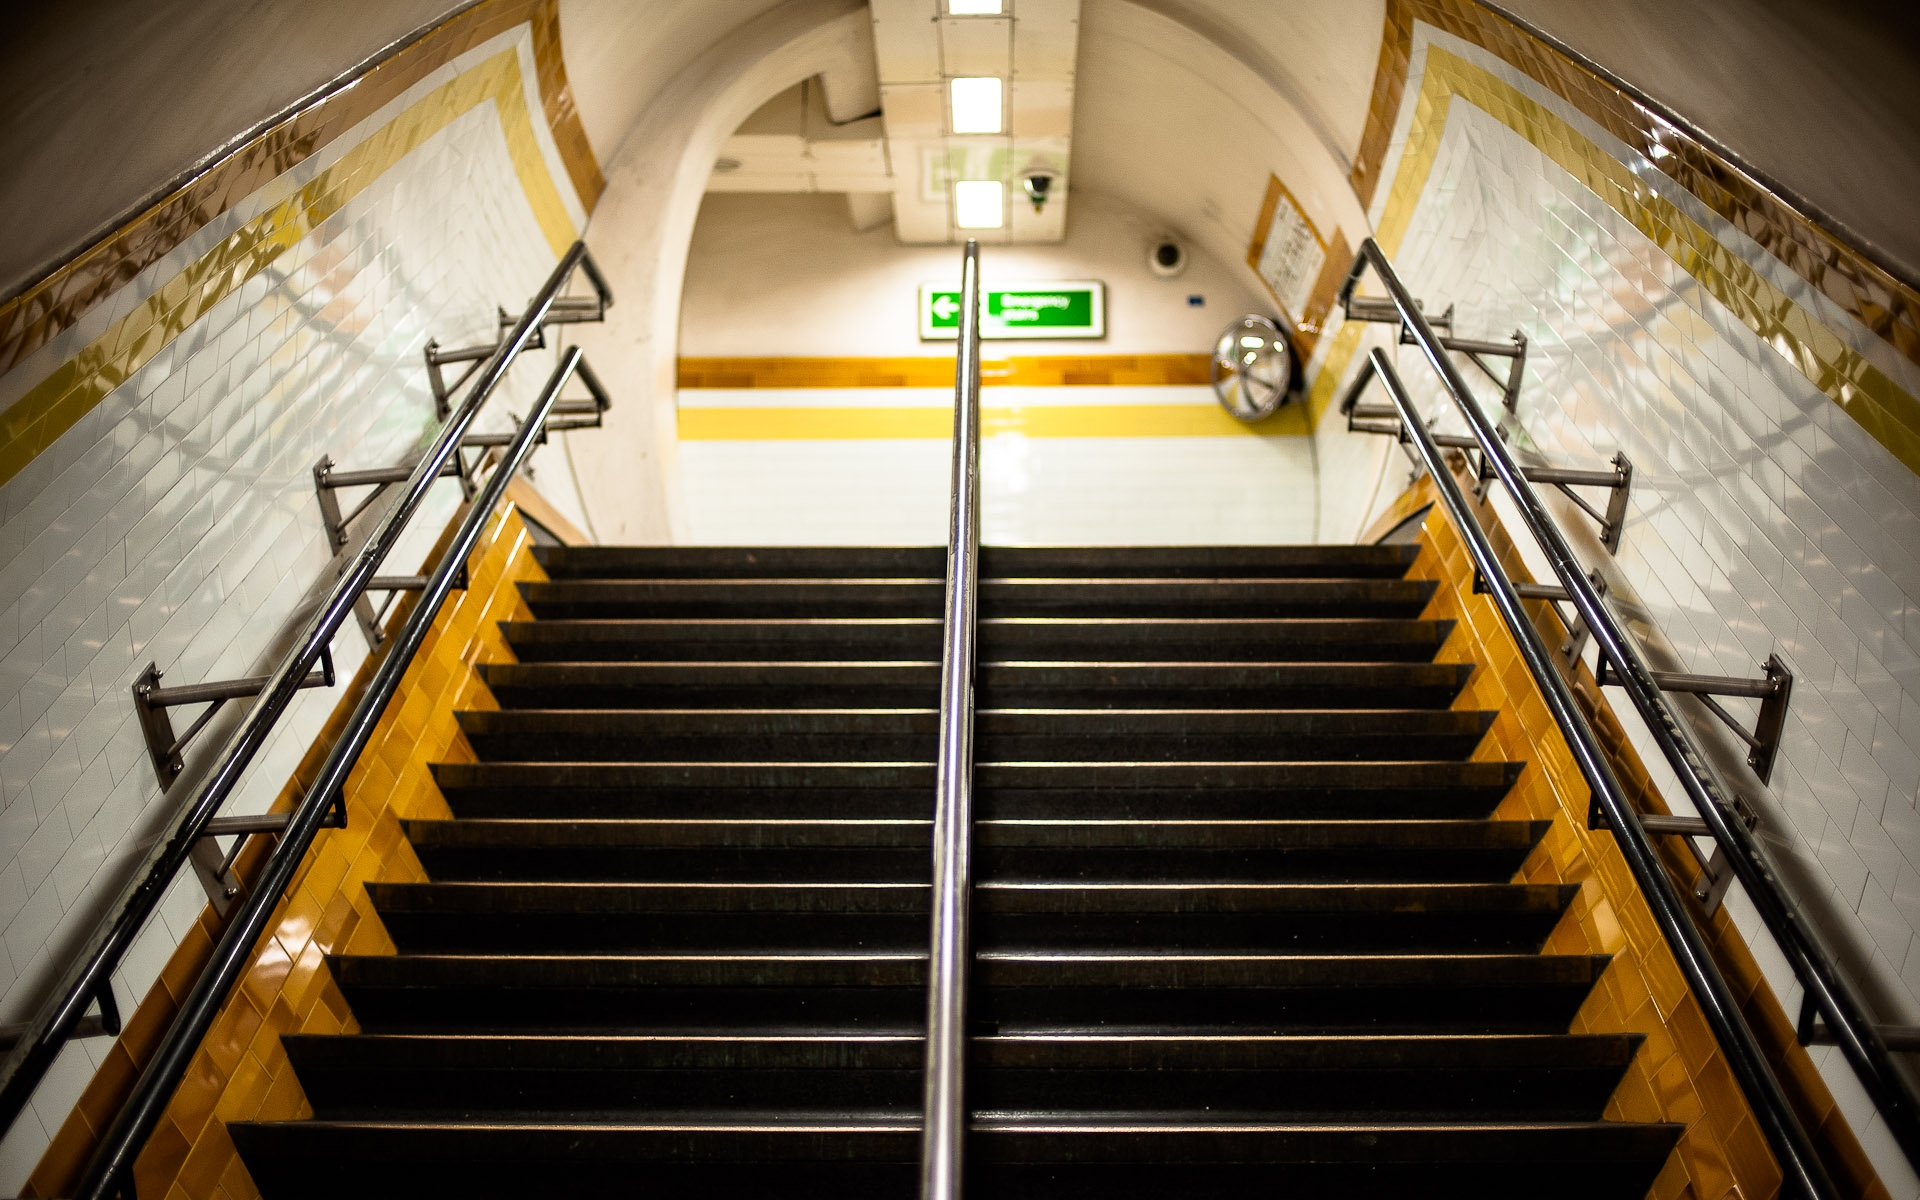 London underground tube steps